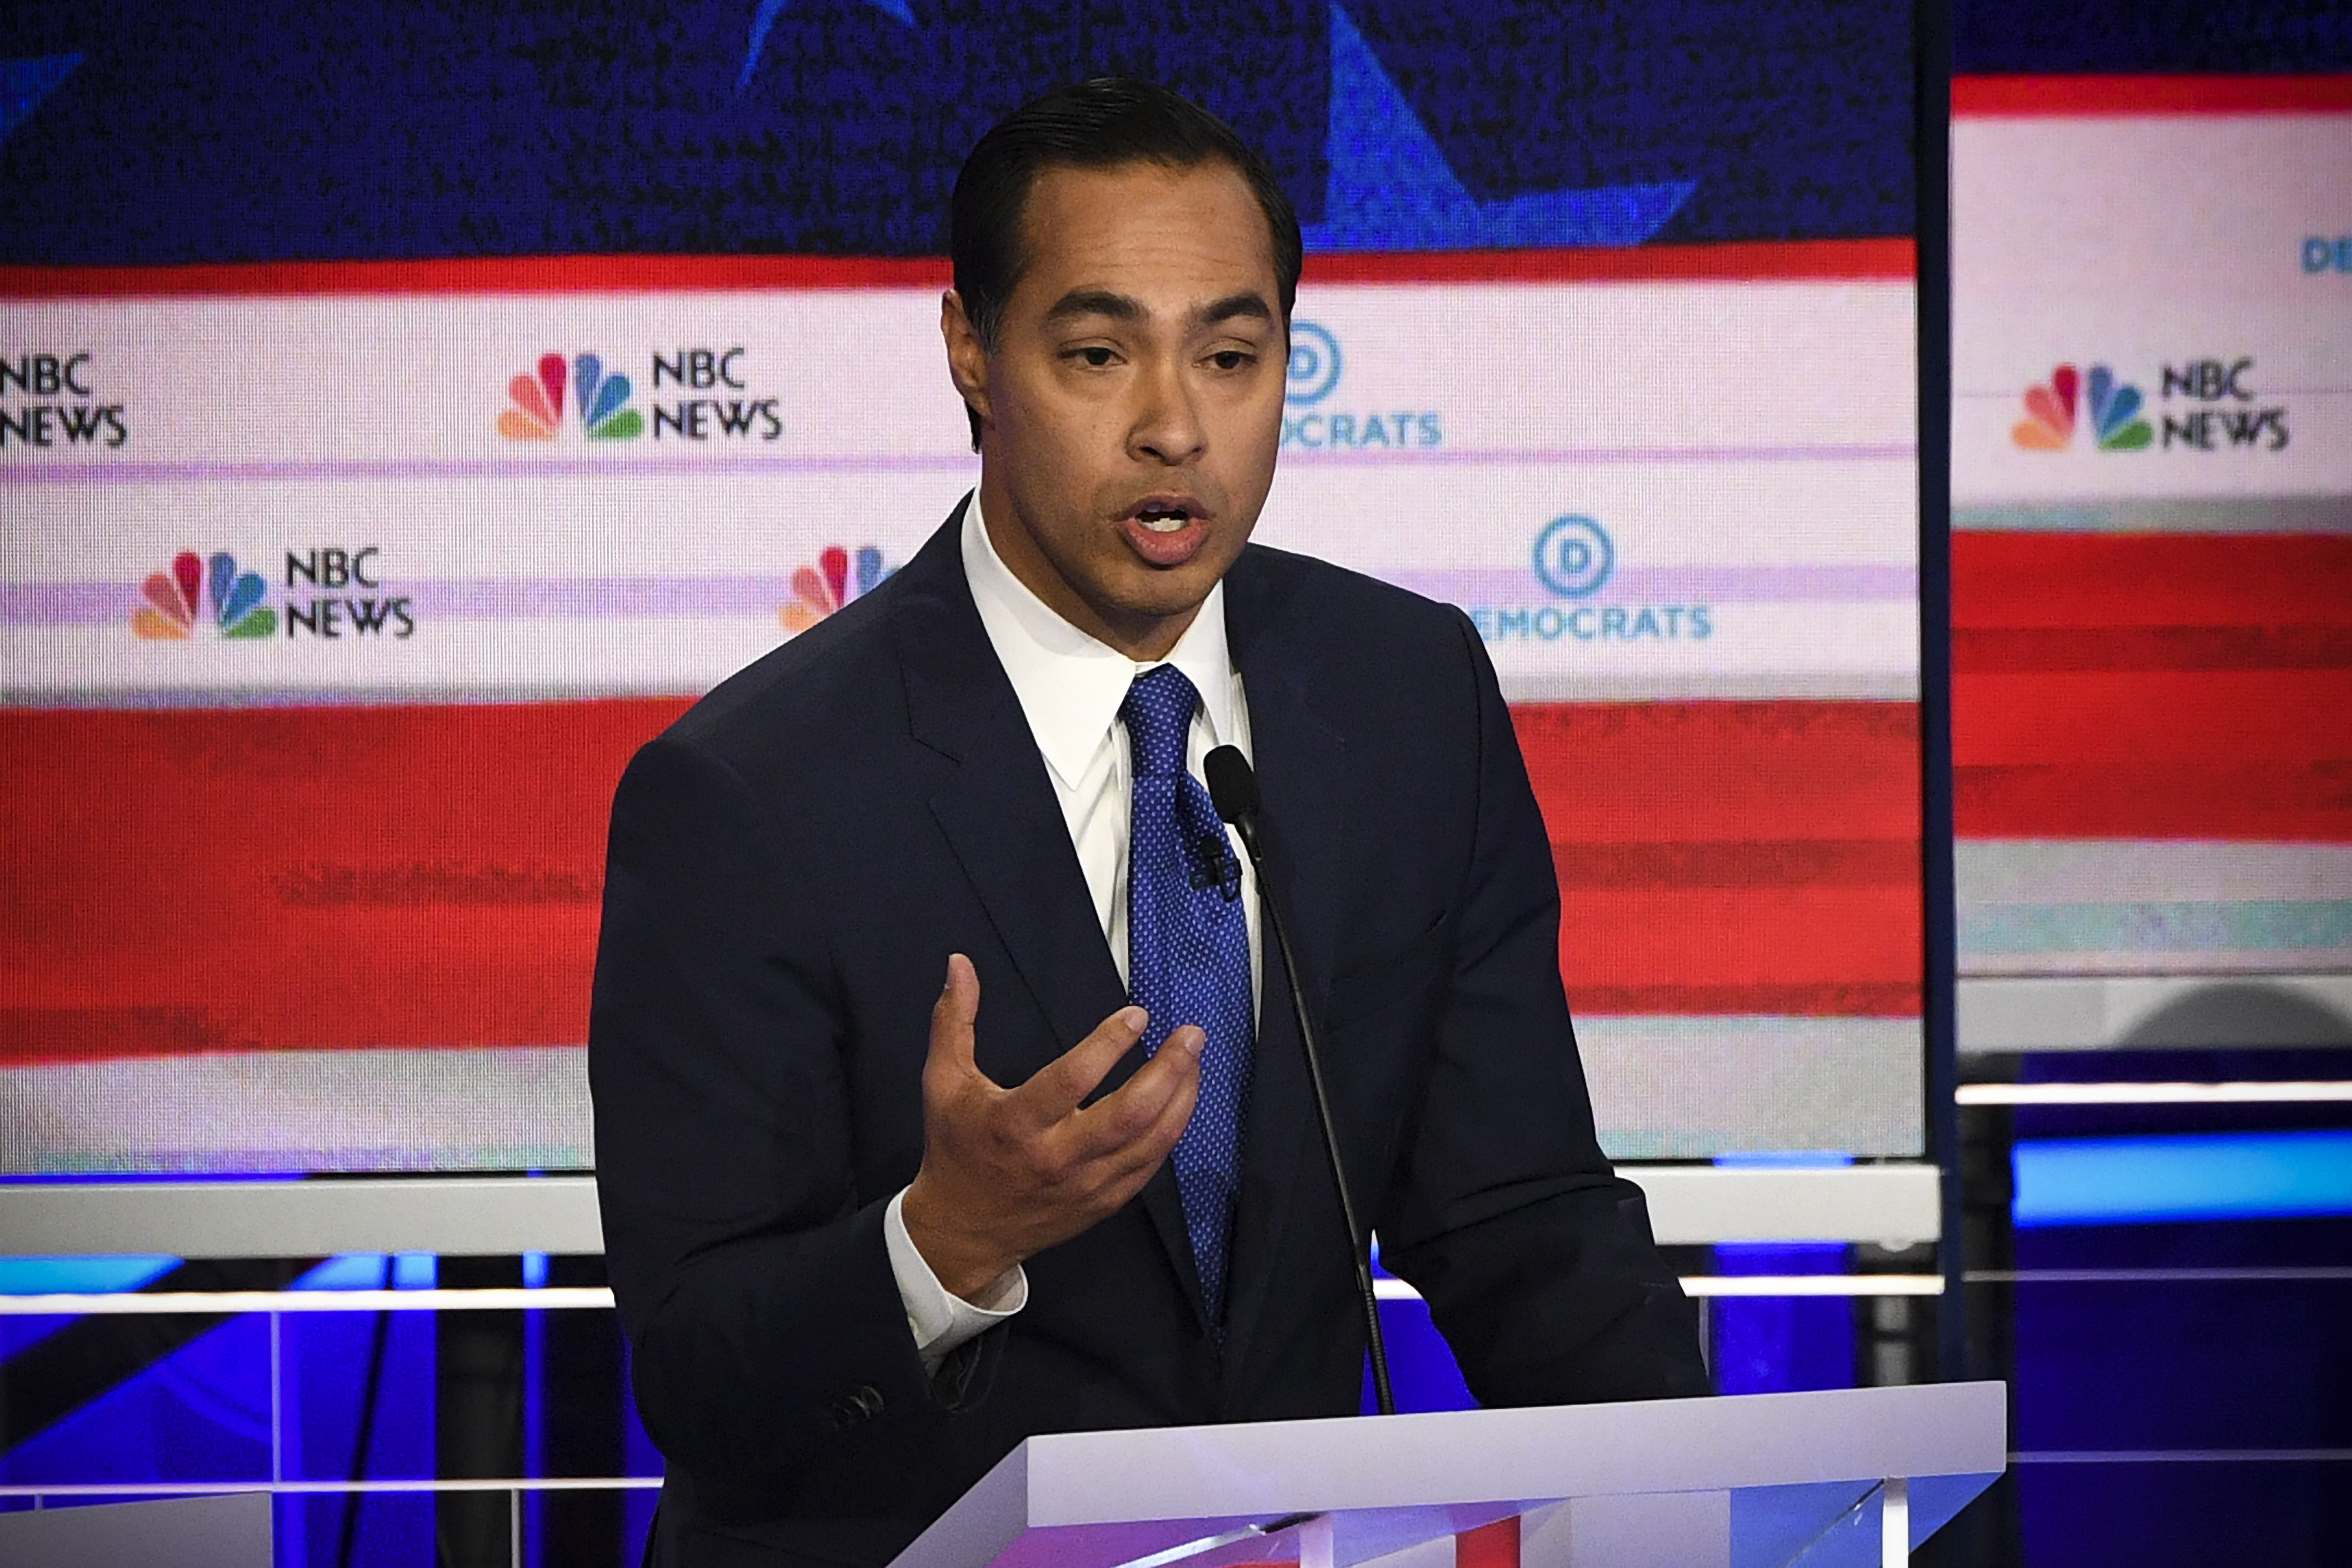 Democratic presidential hopeful former US Secretary of Housing and Urban Development Julian Castro speaks during the first Democratic primary debate of the 2020 presidential campaign season in Miami, Florida, June 26, 2019.